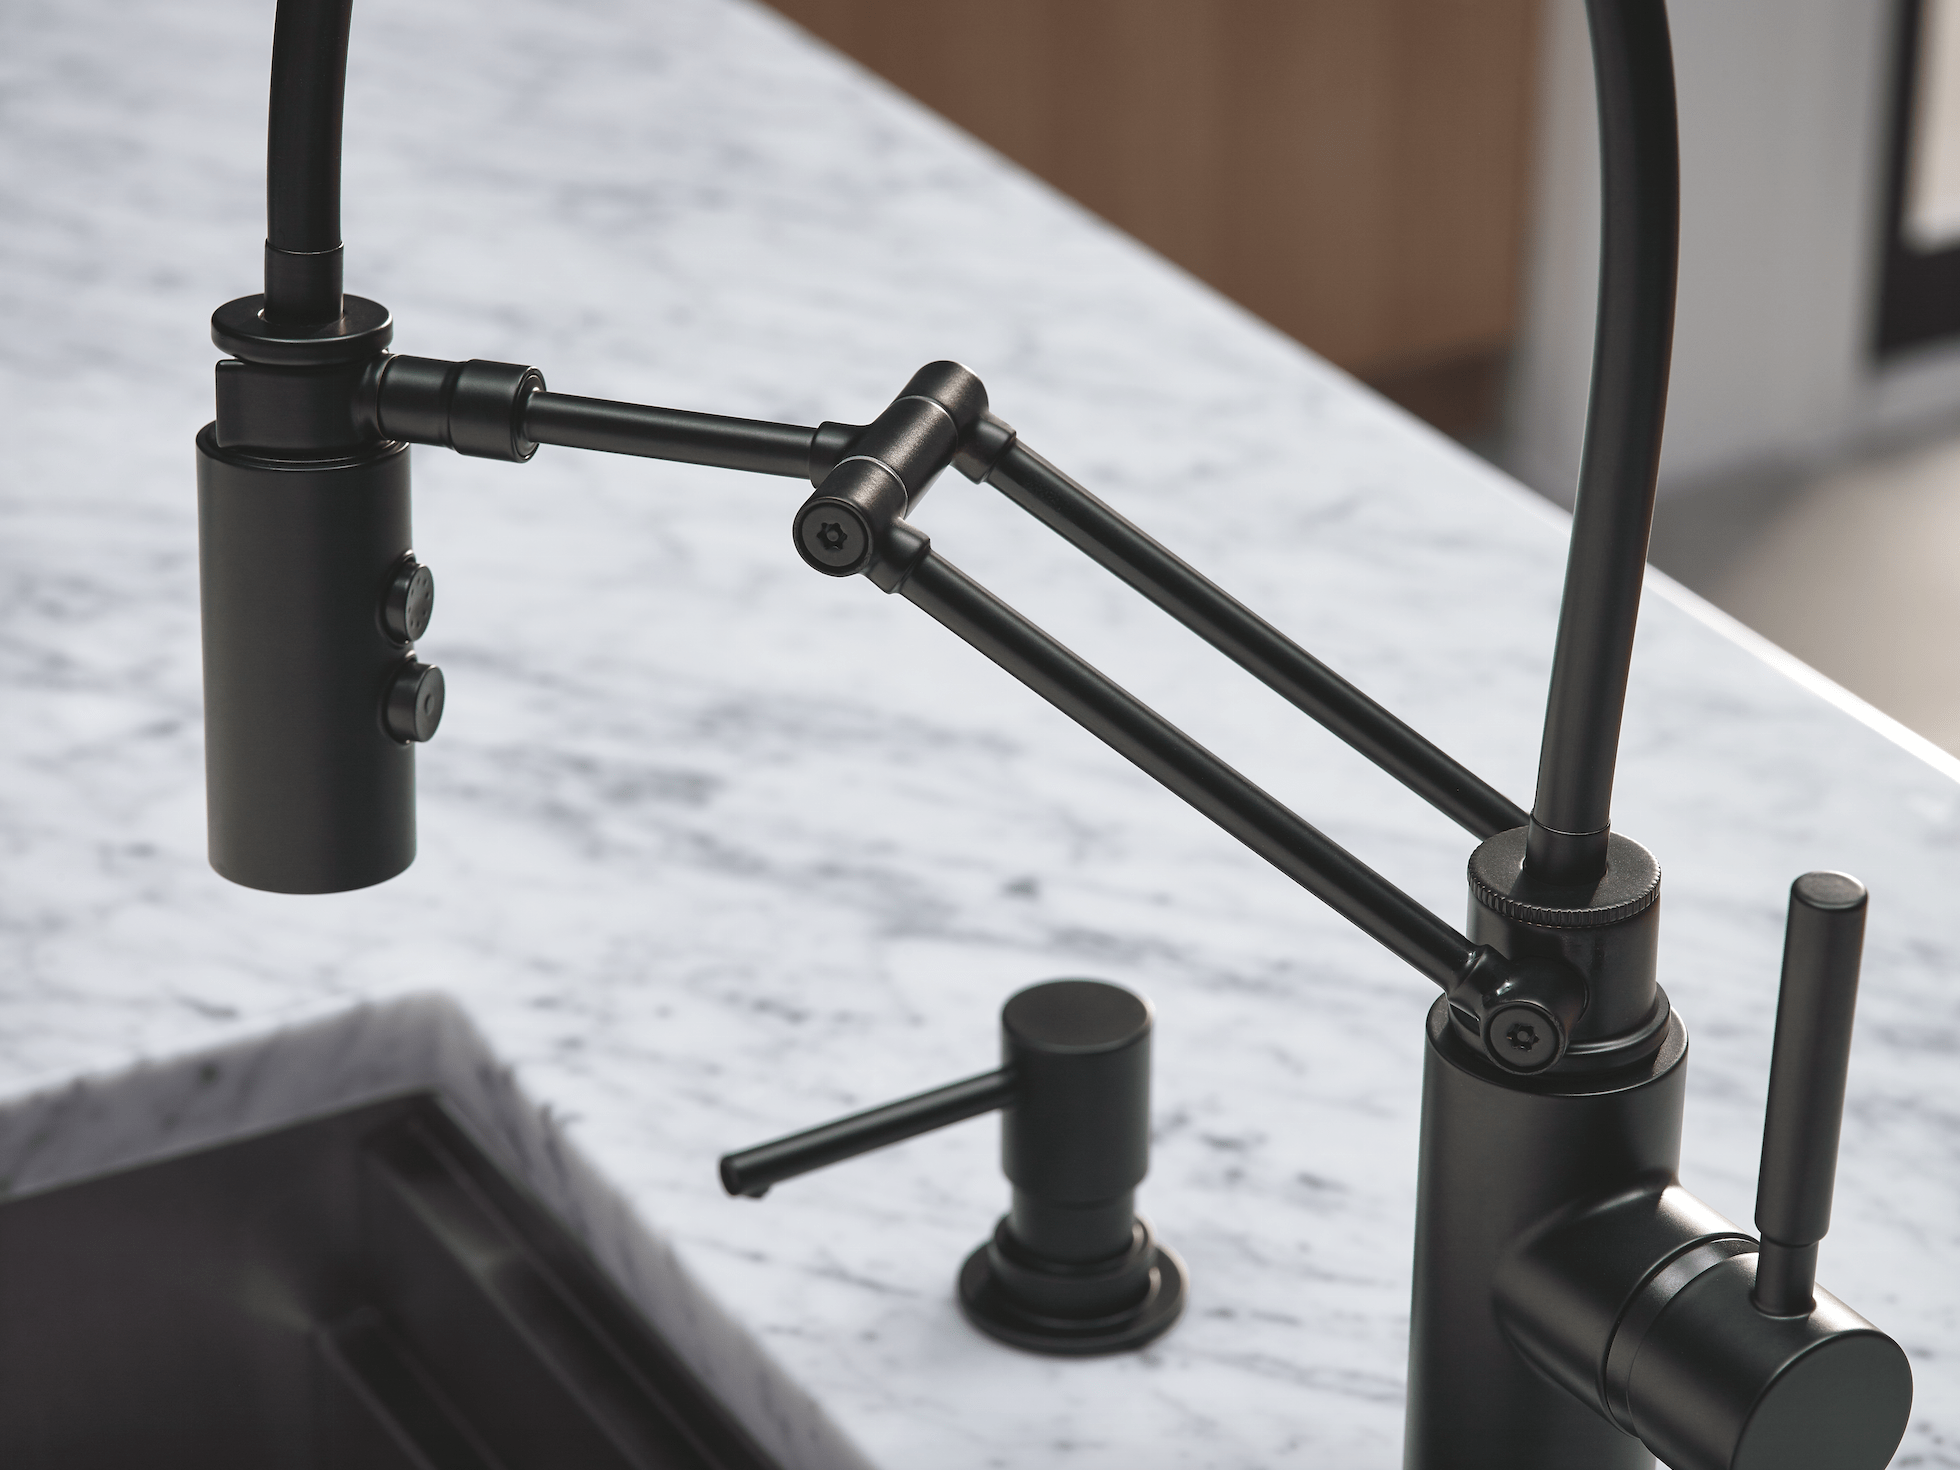 kitchen spaces brizo kitchen faucet The Solna Articulating Kitchen Faucet by Brizo in matte black was the hero in this modern kitchen space designed by